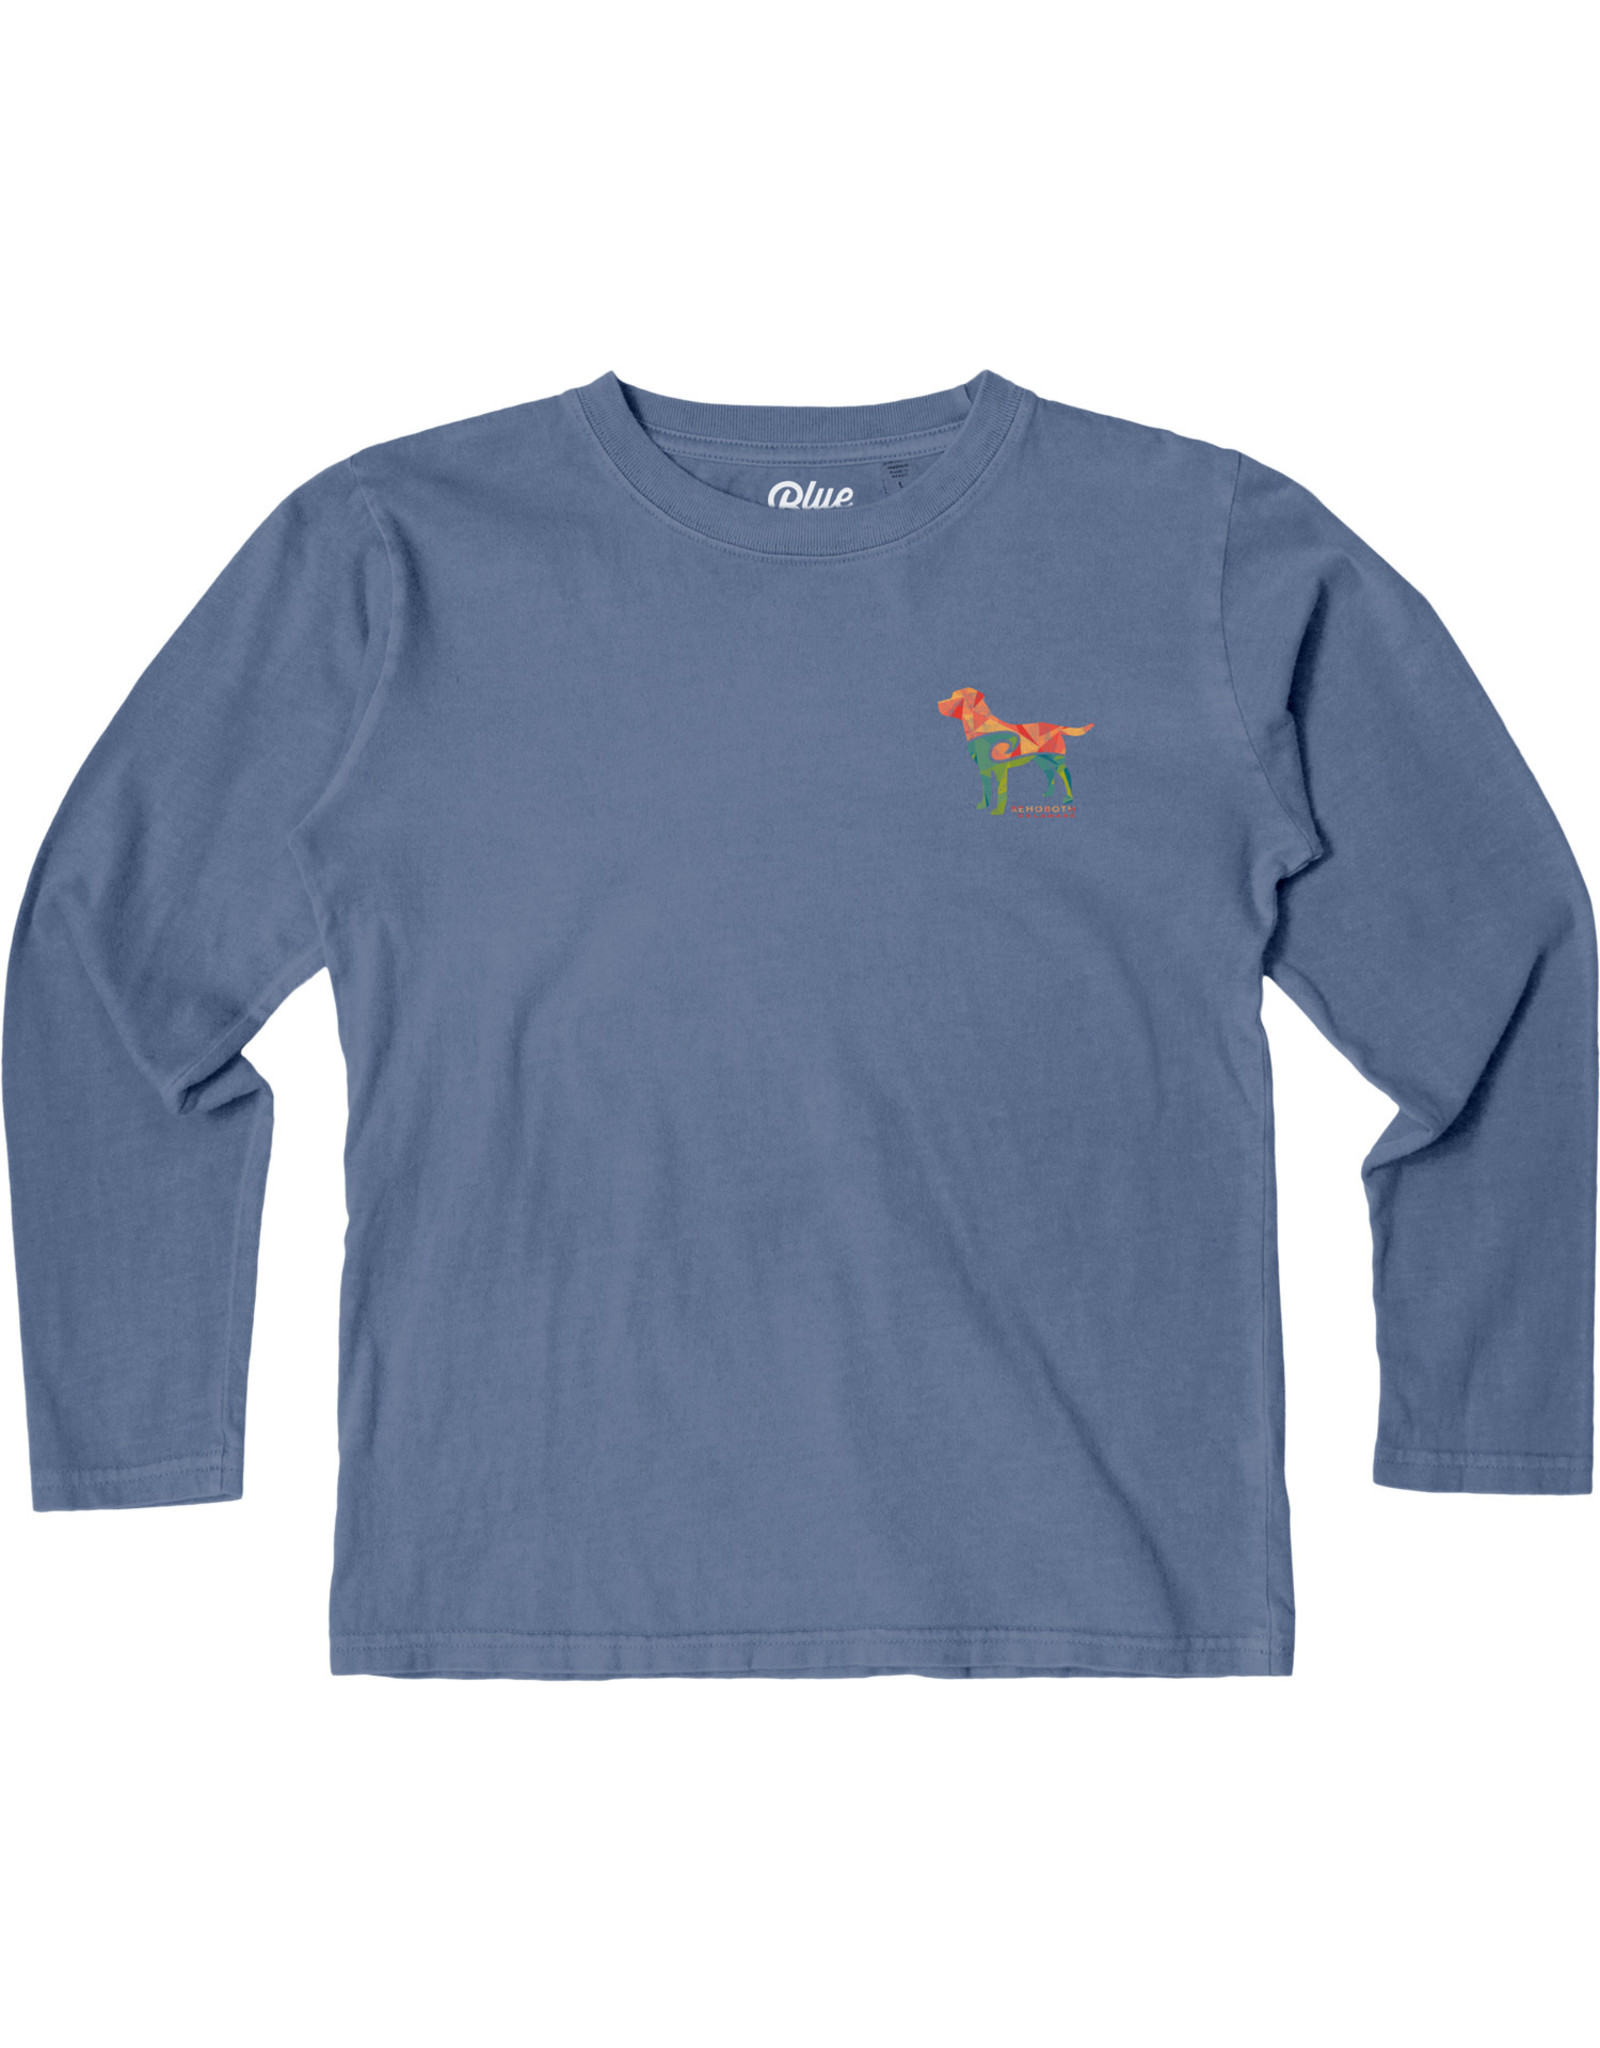 BLUE 84 REMNANT LAB YOUTH LS TEE